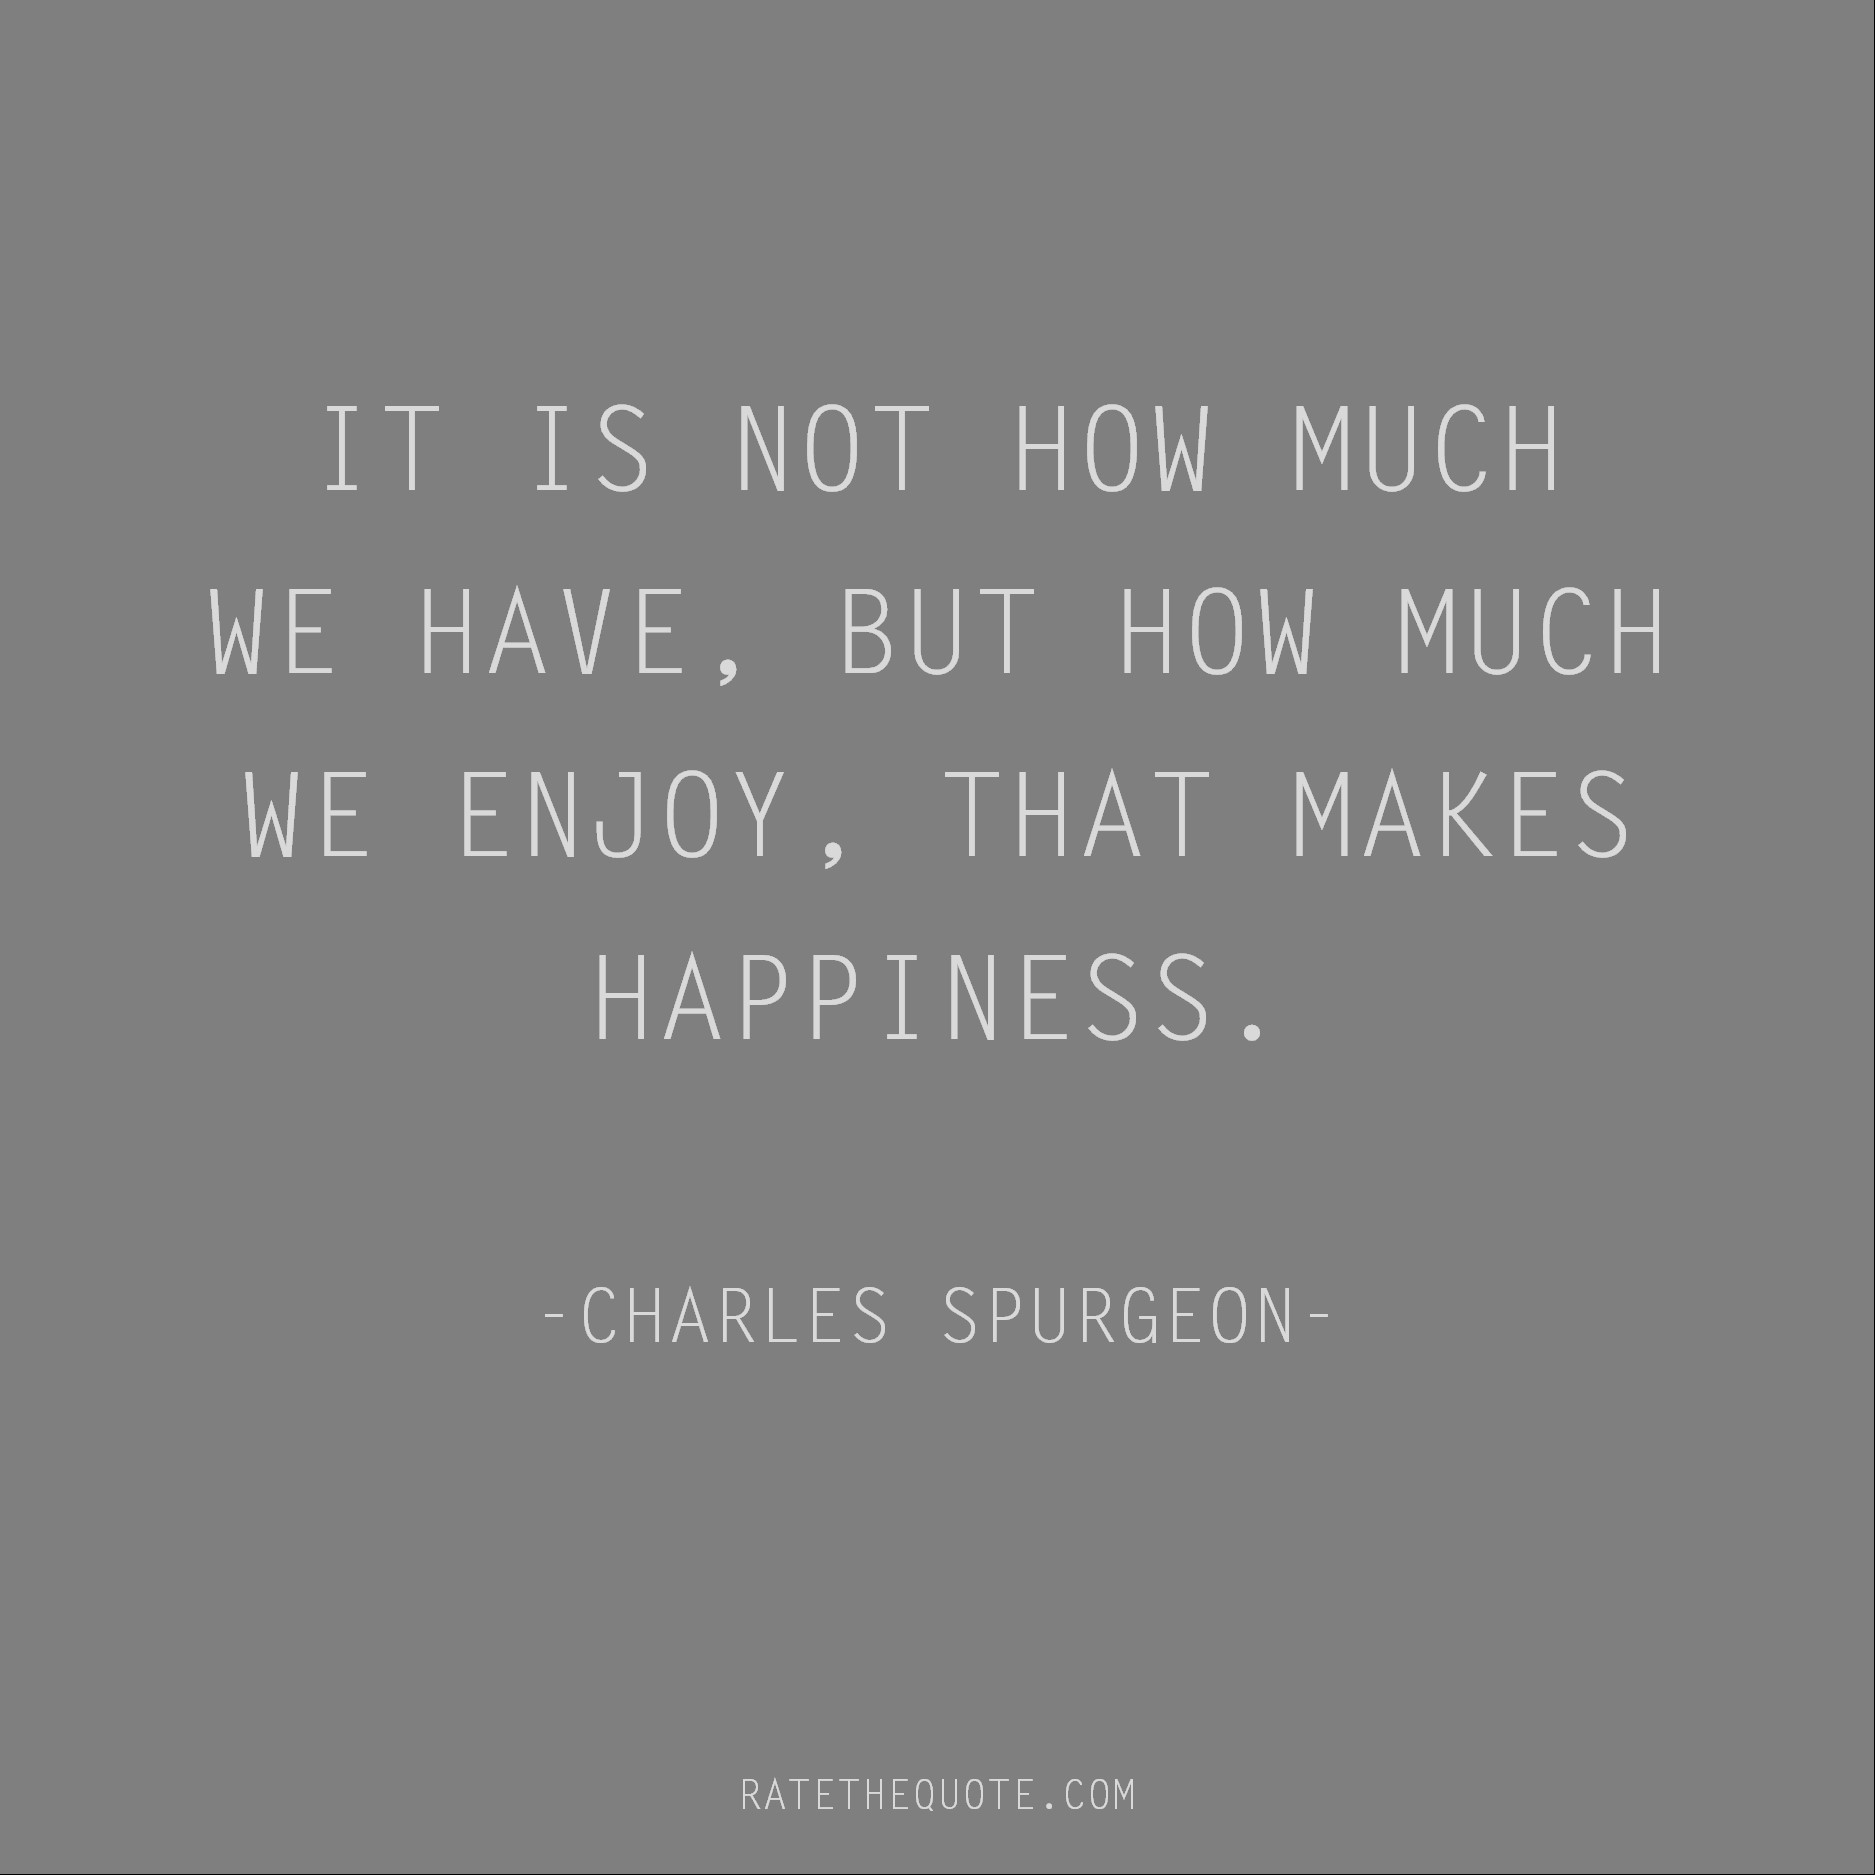 Happiness Quotes It is not how much we have, but how much we enjoy, that makes happiness. Charles Spurgeon